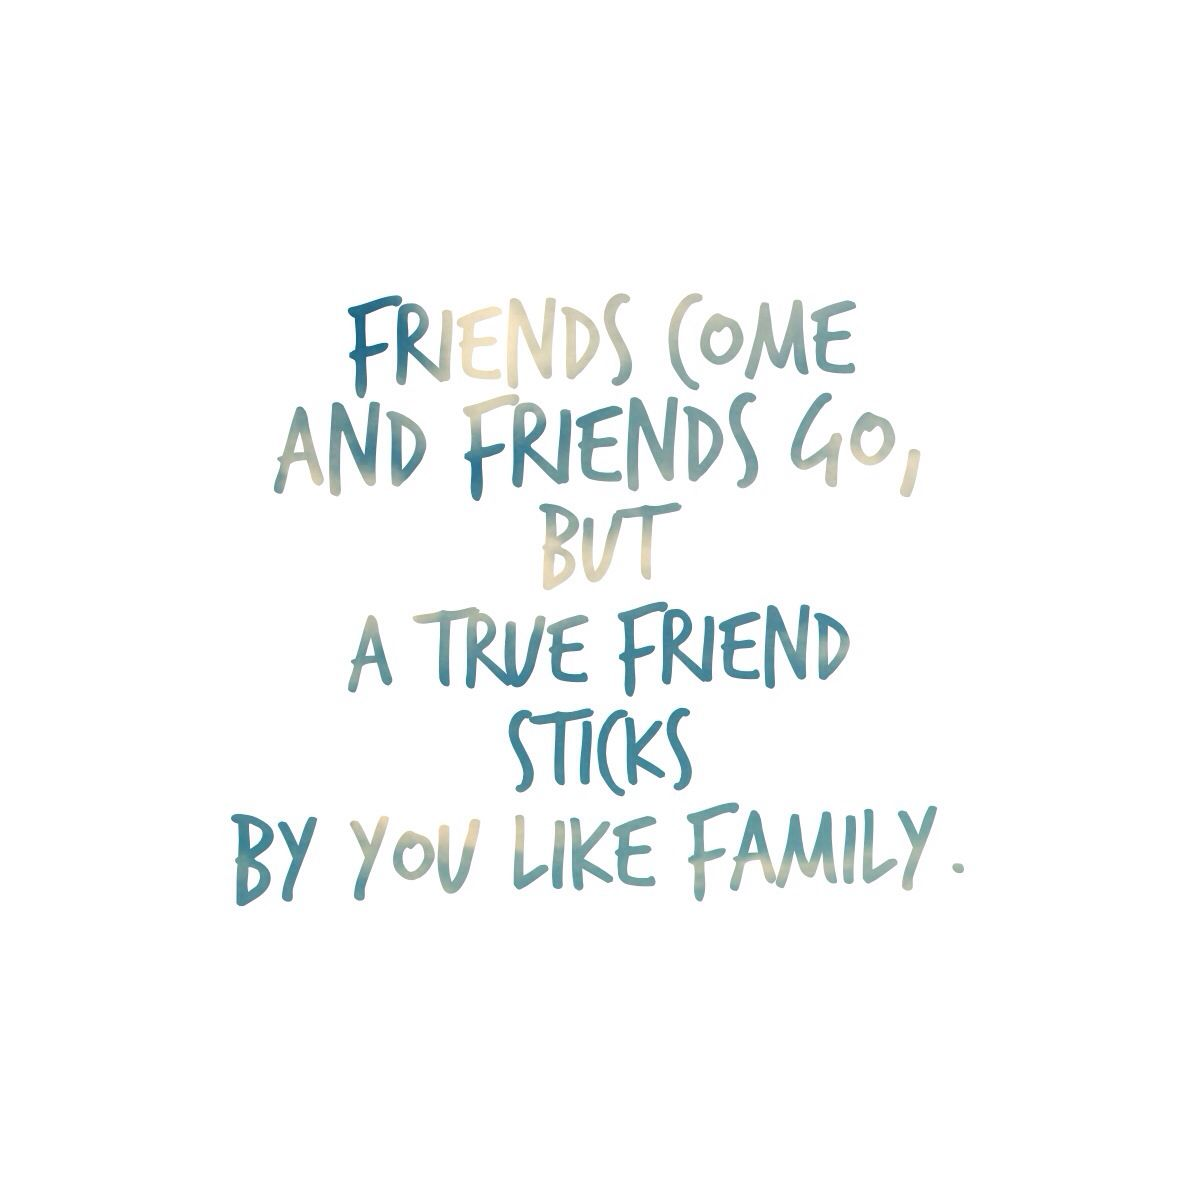 Friends Come And Friends Go But A True Friend Sticks By You Like Family Proverbs 18 24 Msg Quote Friendship Friendship Quotes Quotes To Live By Quotes